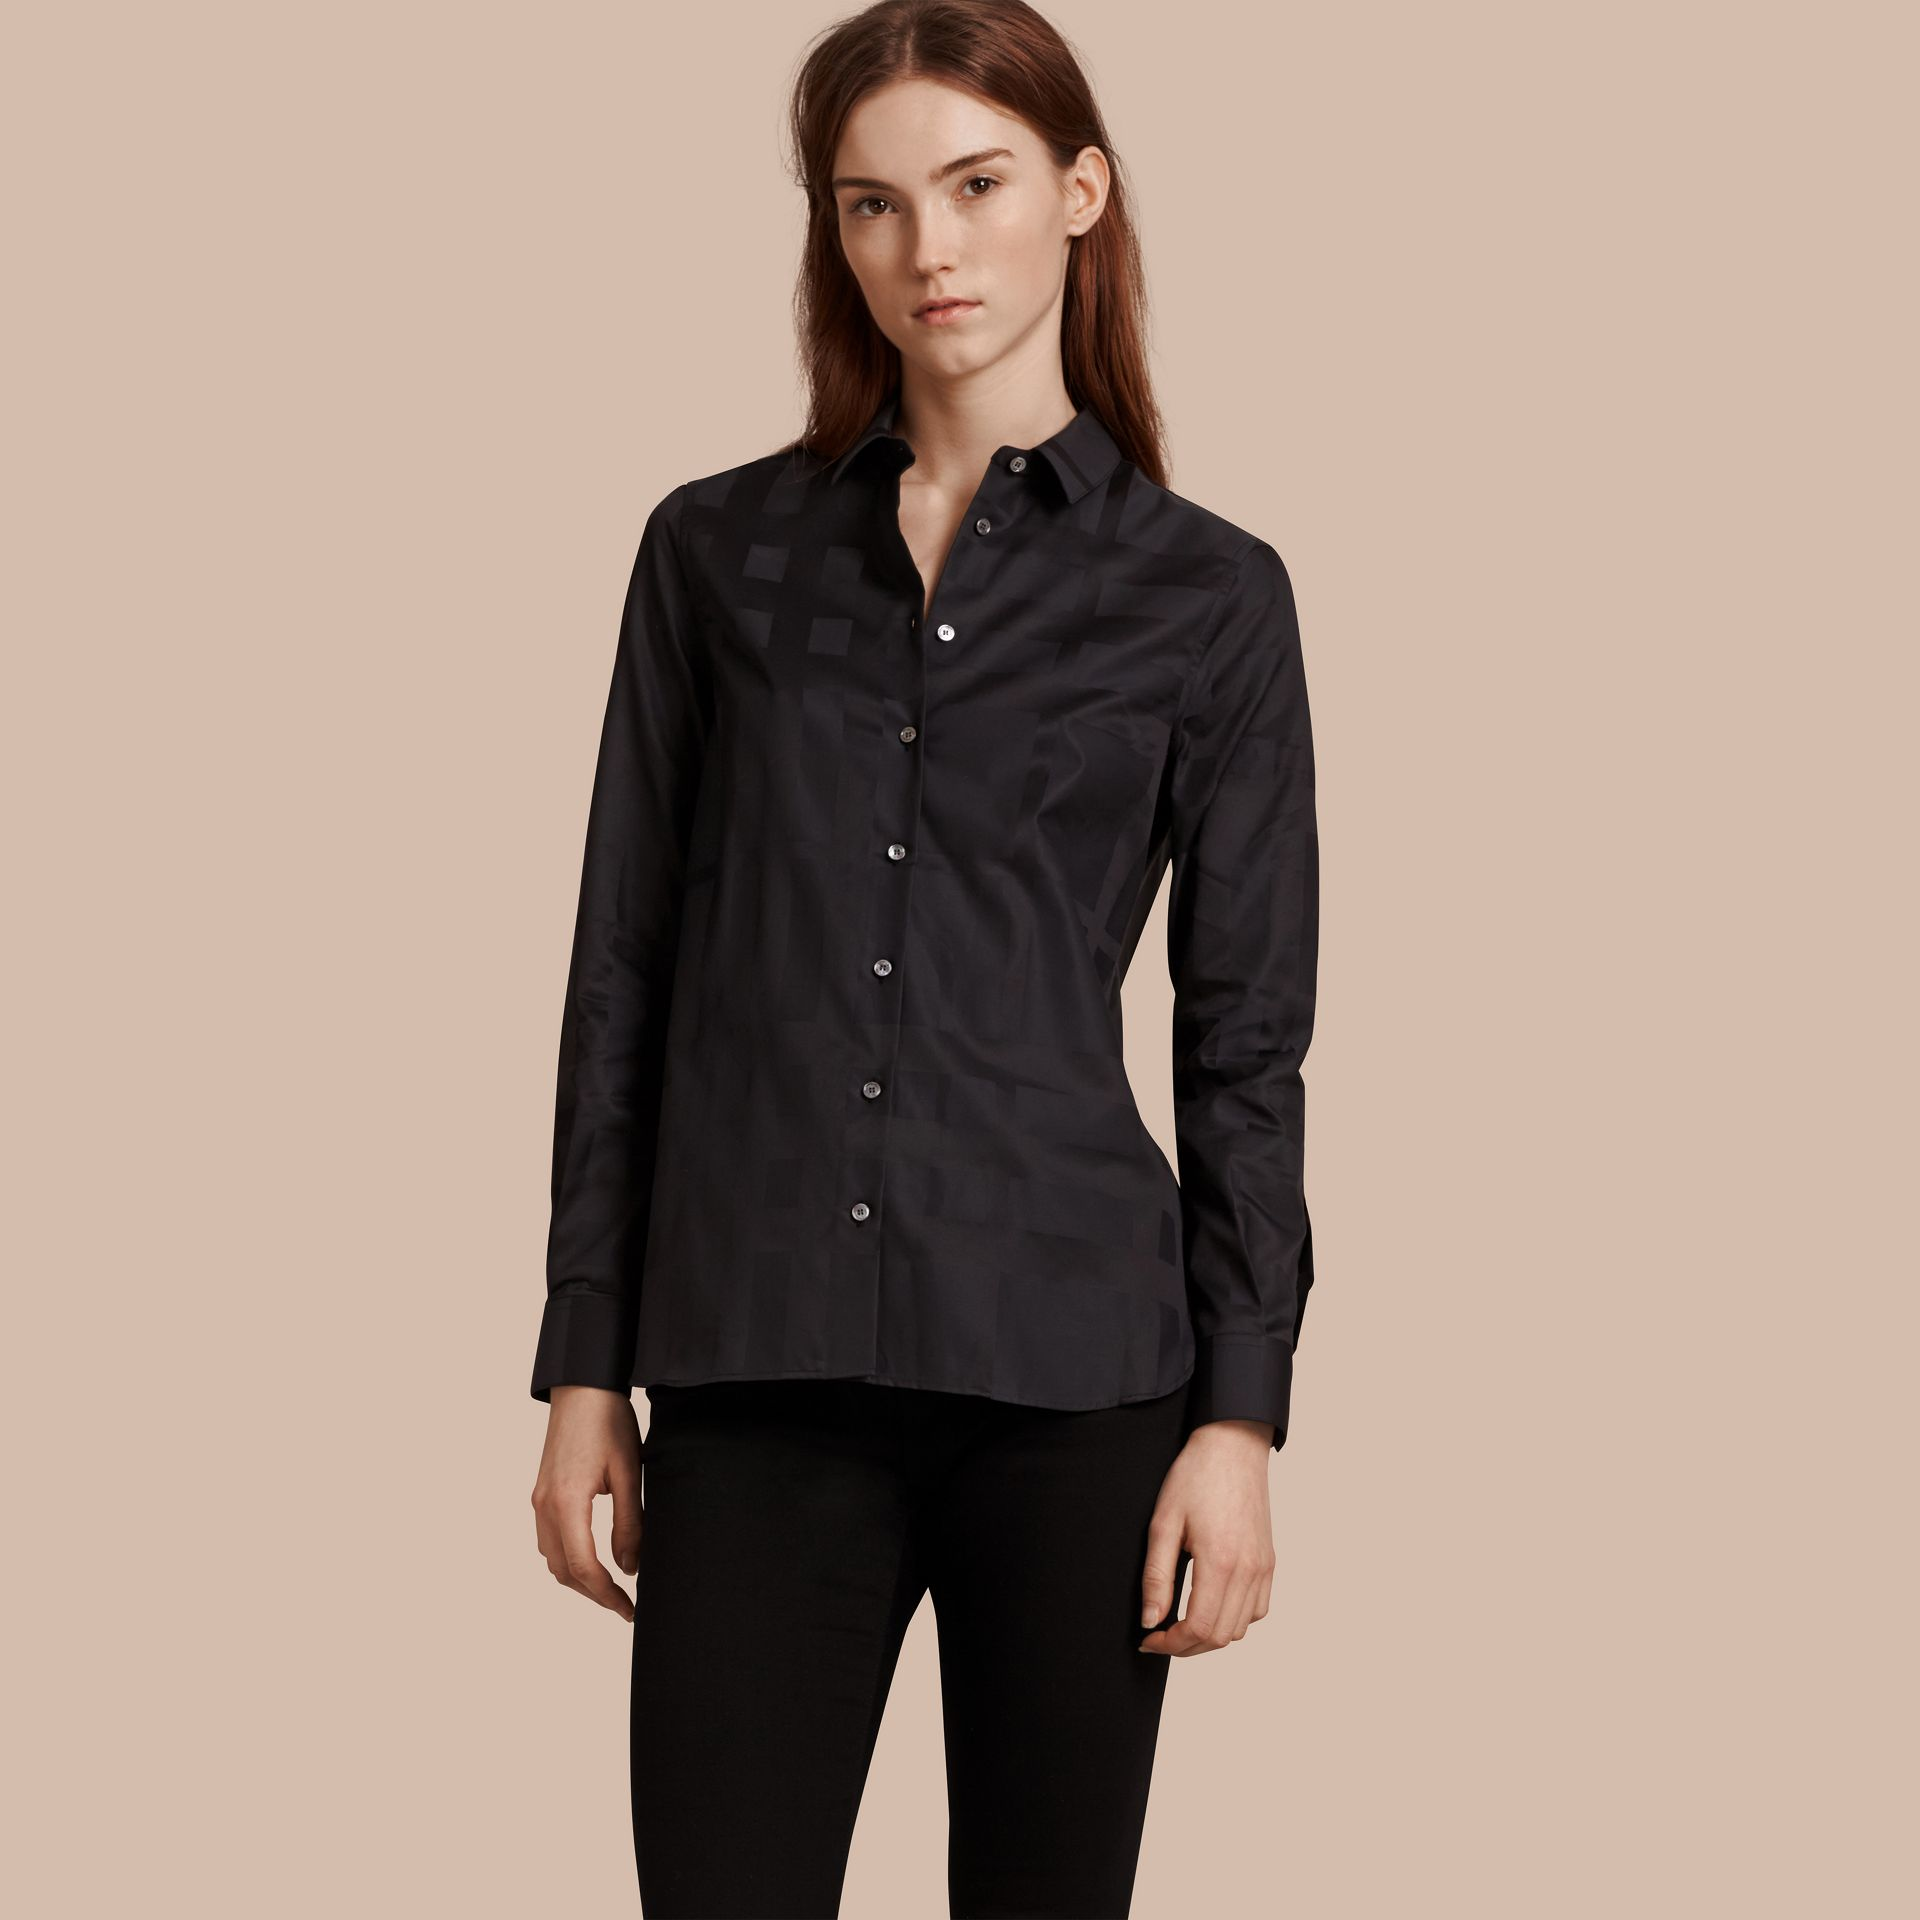 Black Check Jacquard Cotton Shirt Black - gallery image 1